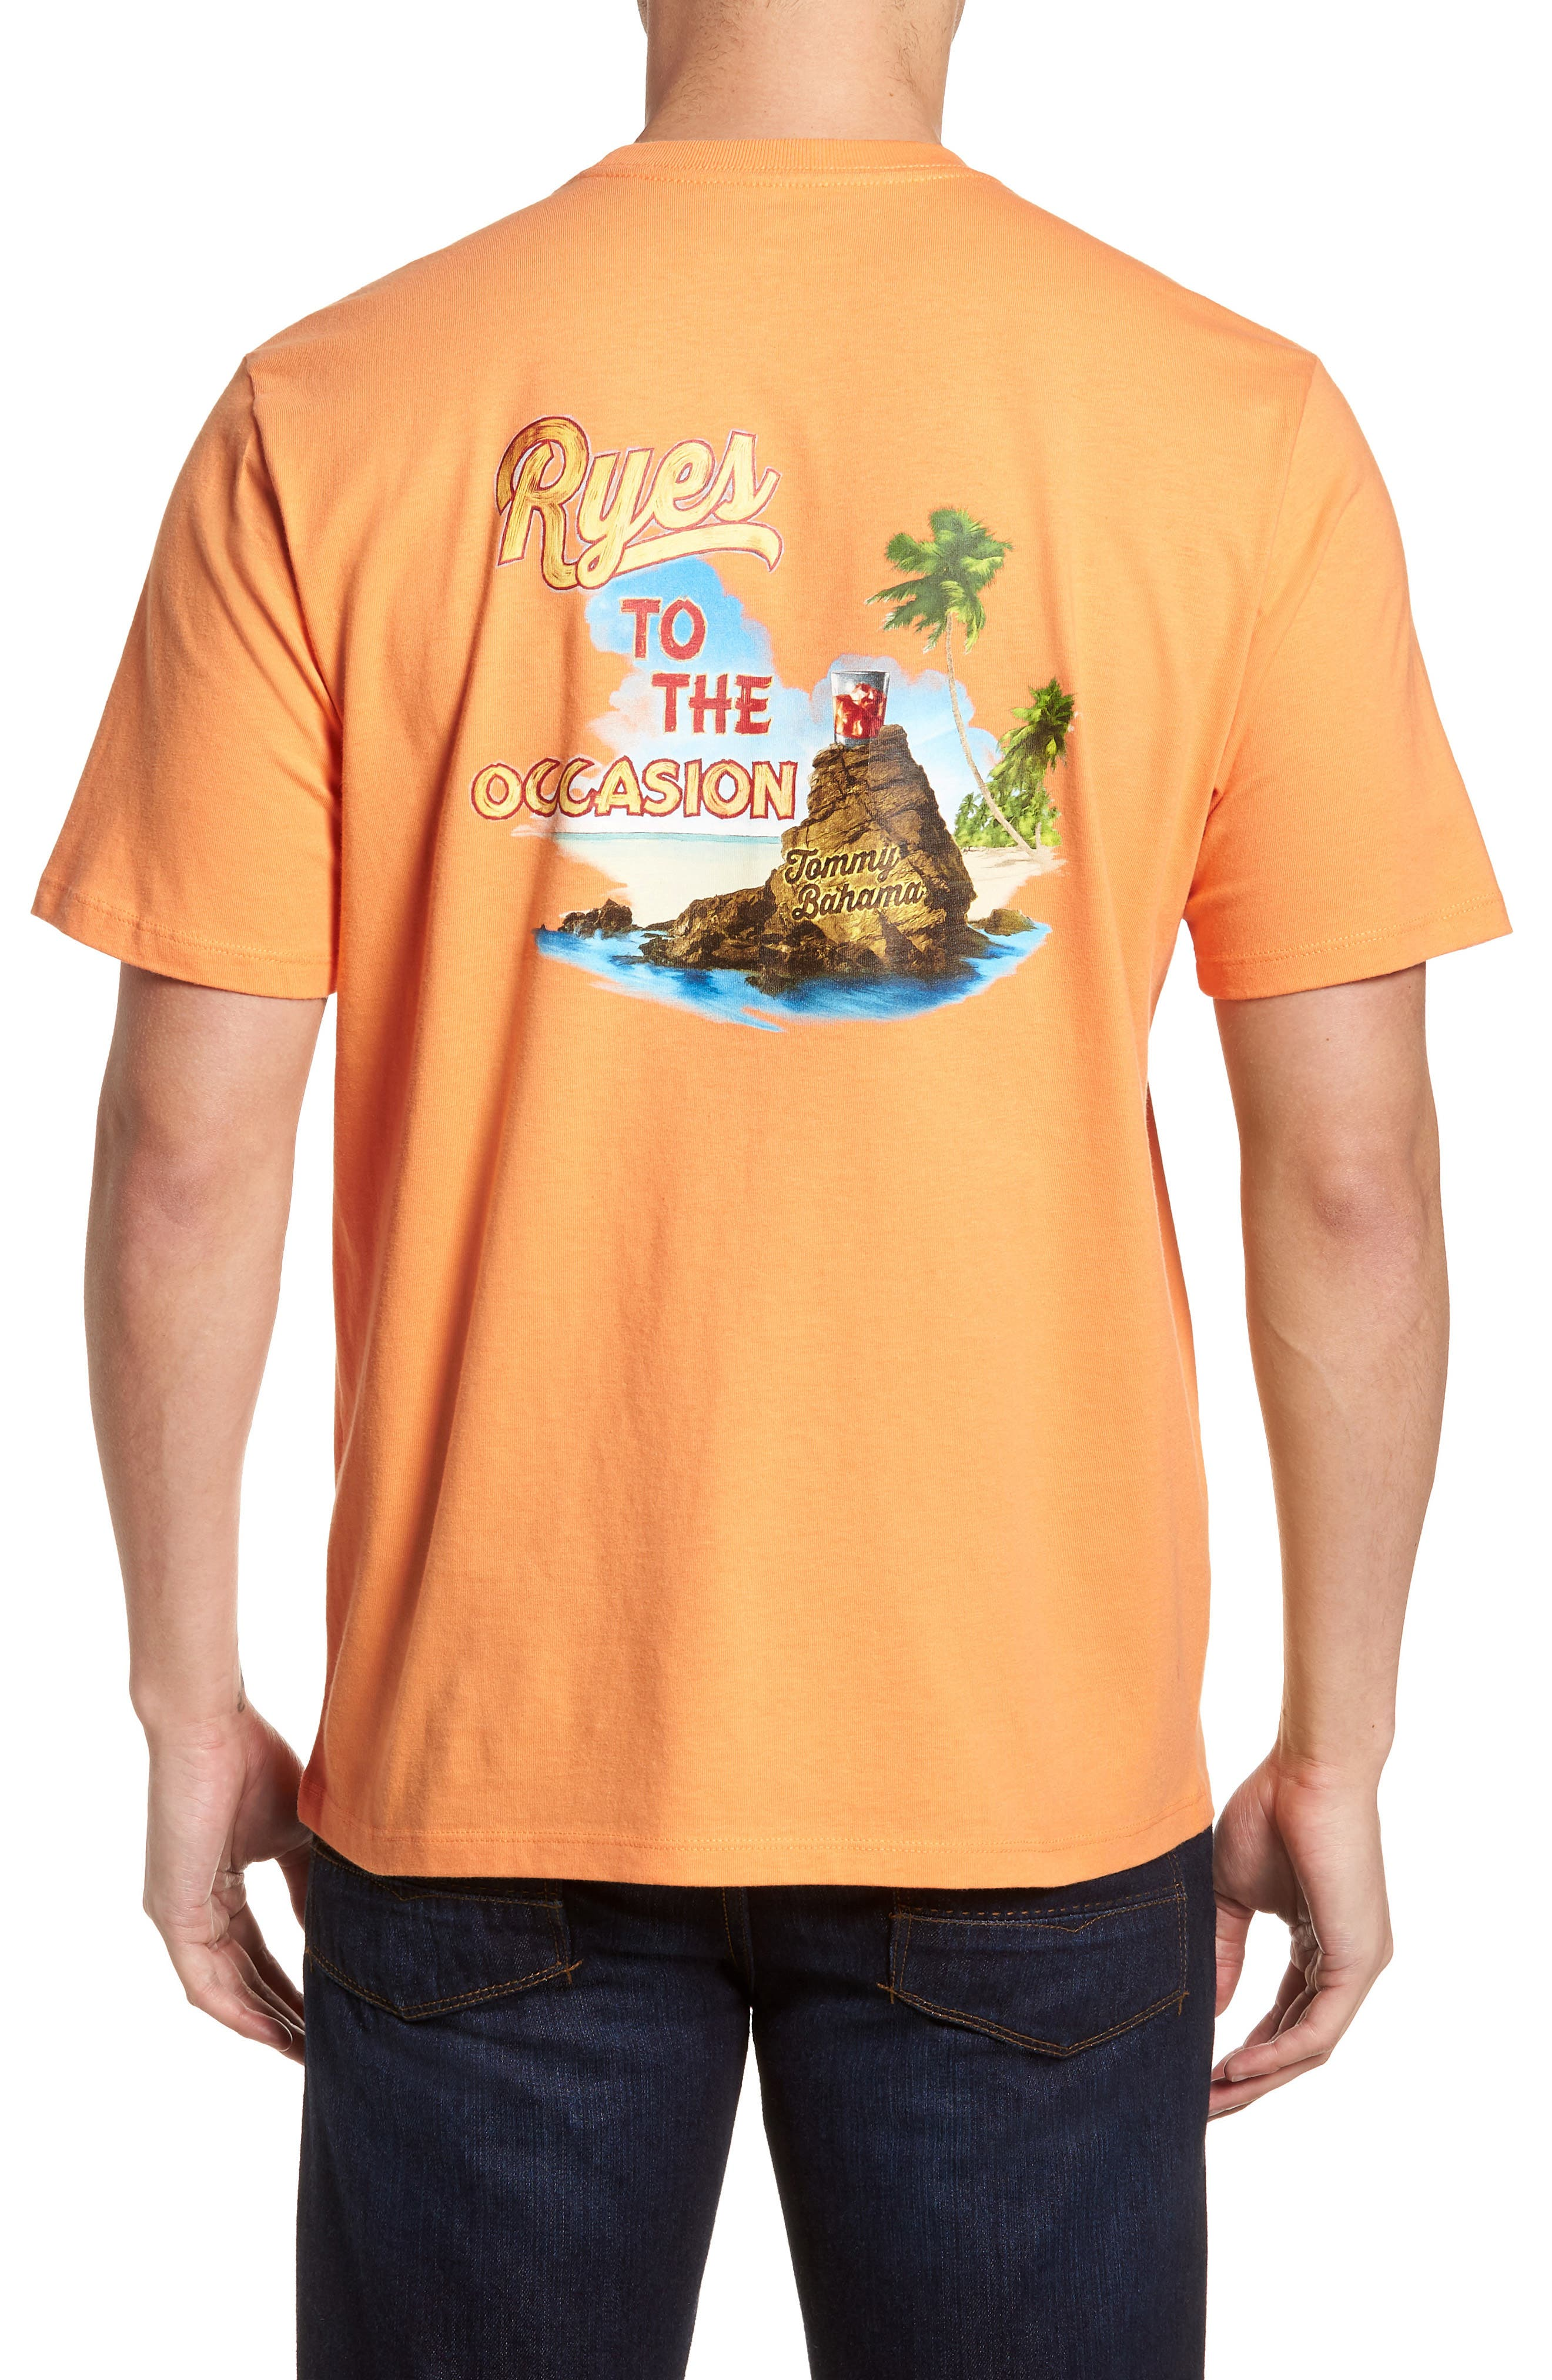 Ryes to the Occasion T-Shirt,                             Alternate thumbnail 2, color,                             800